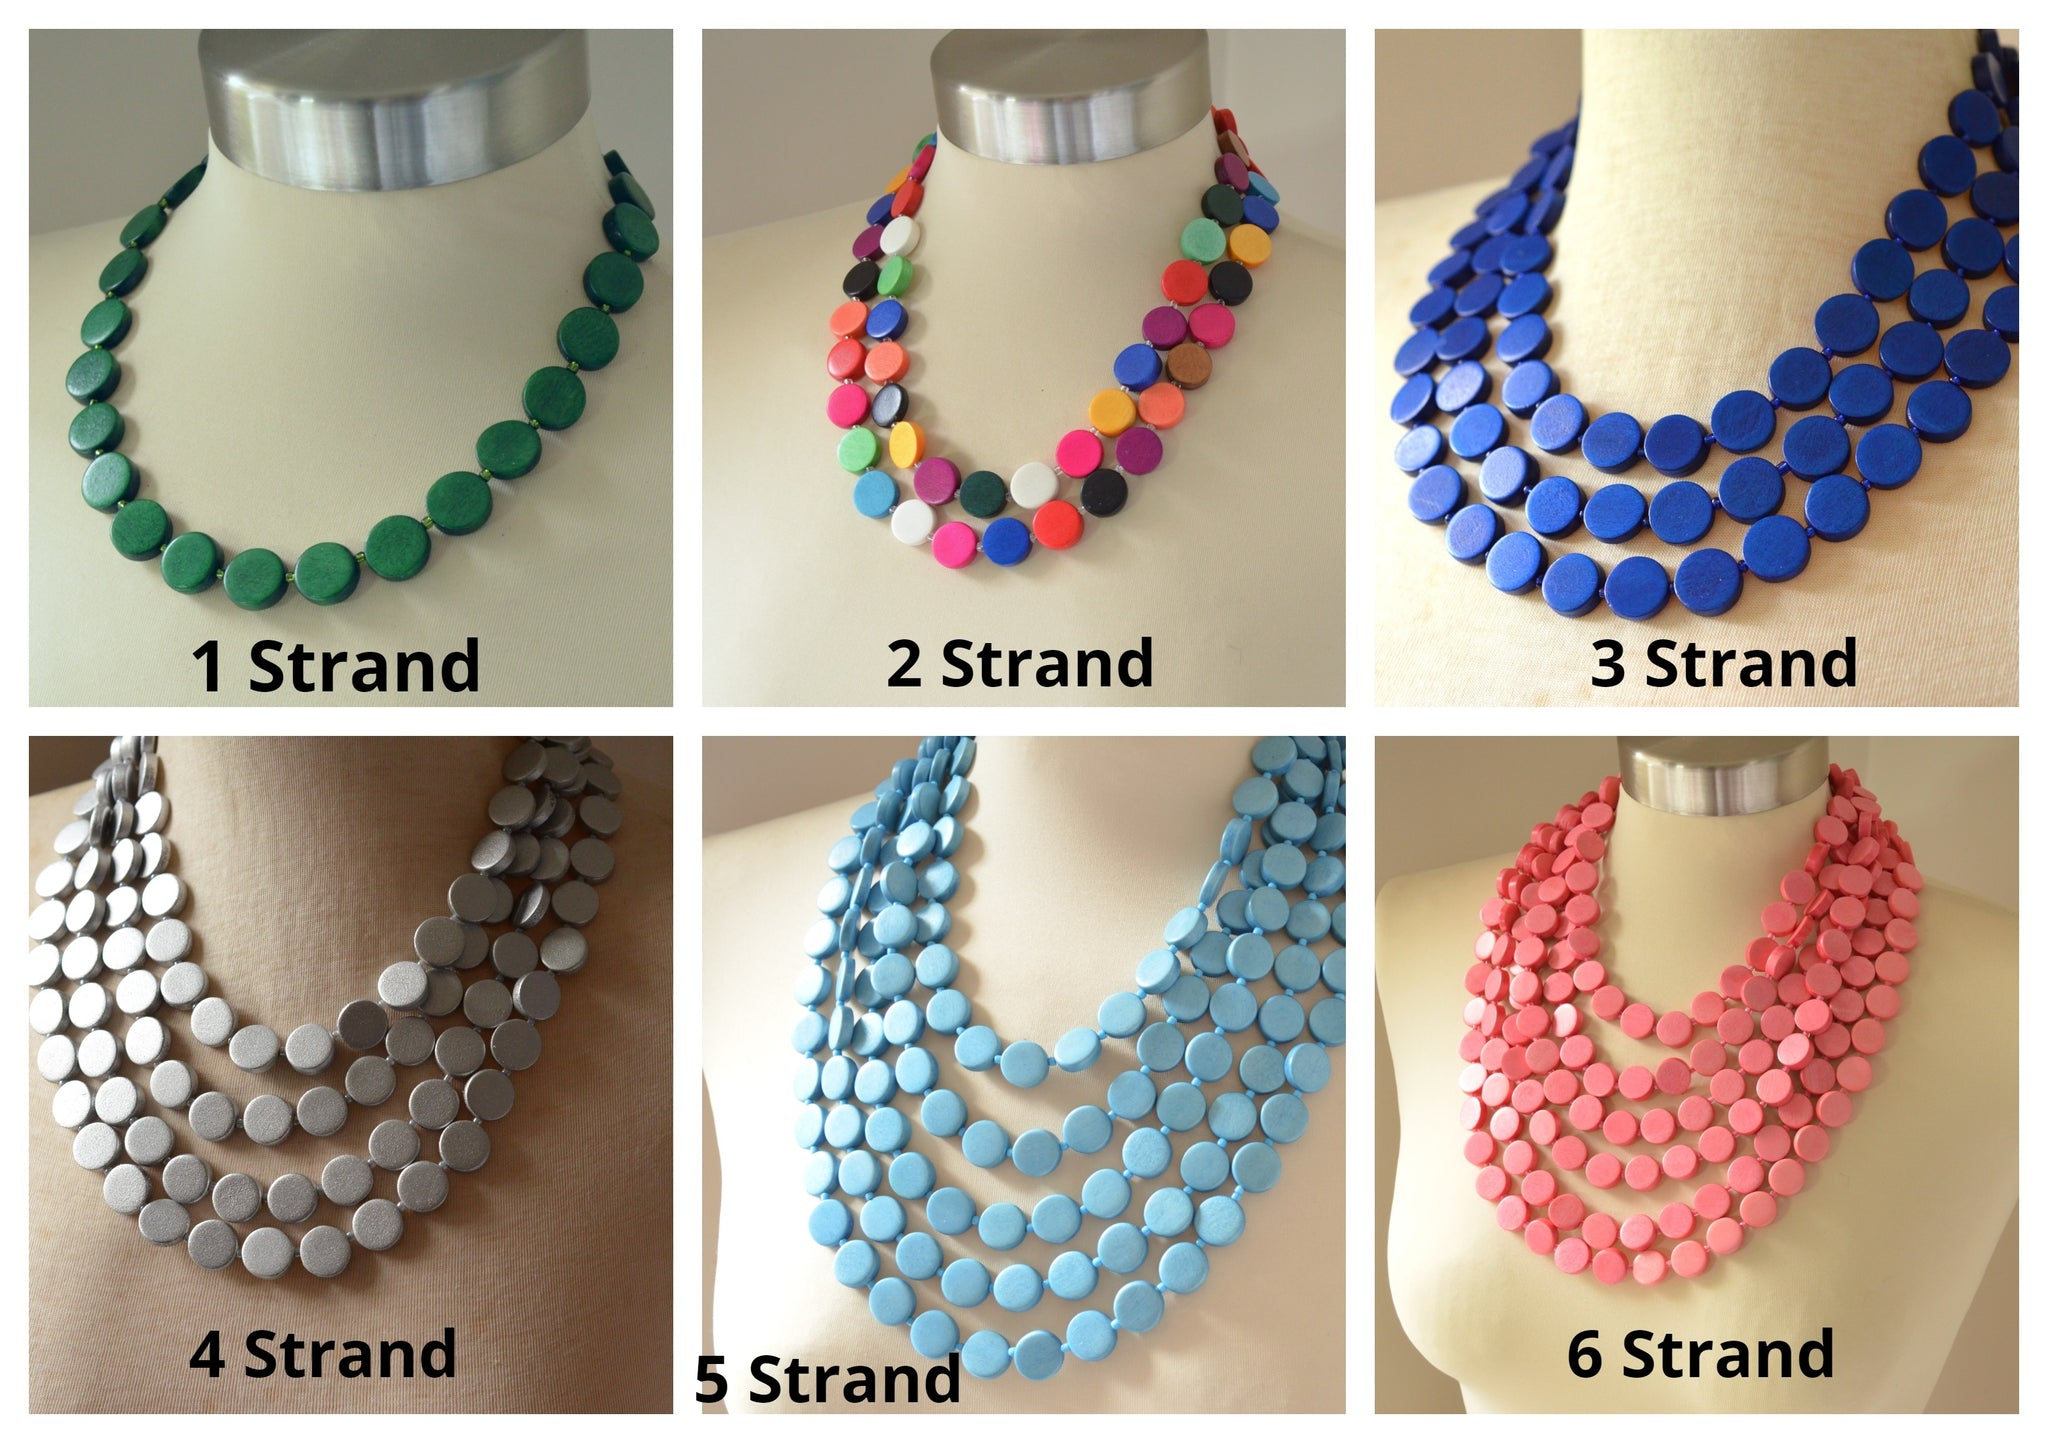 Charlotte Green Statement Necklace Rubber Multi Strand Necklace Gifts For Women